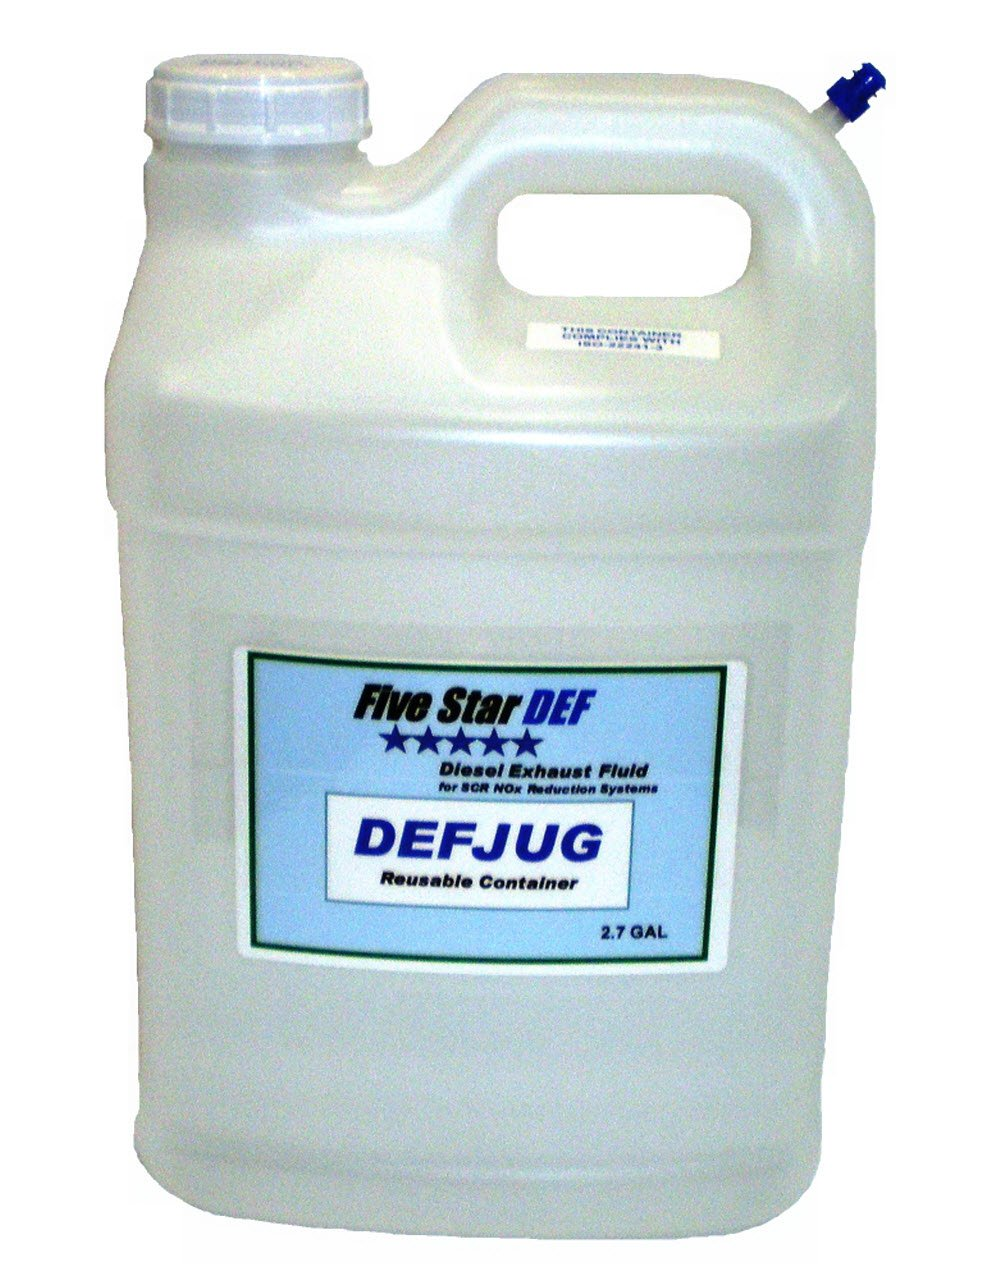 Five Star DEF 2.7 Gallon Reusable DEF JUG with 63/445 DEFSPOUT for Storing DEF by Five Star DEF (Image #1)